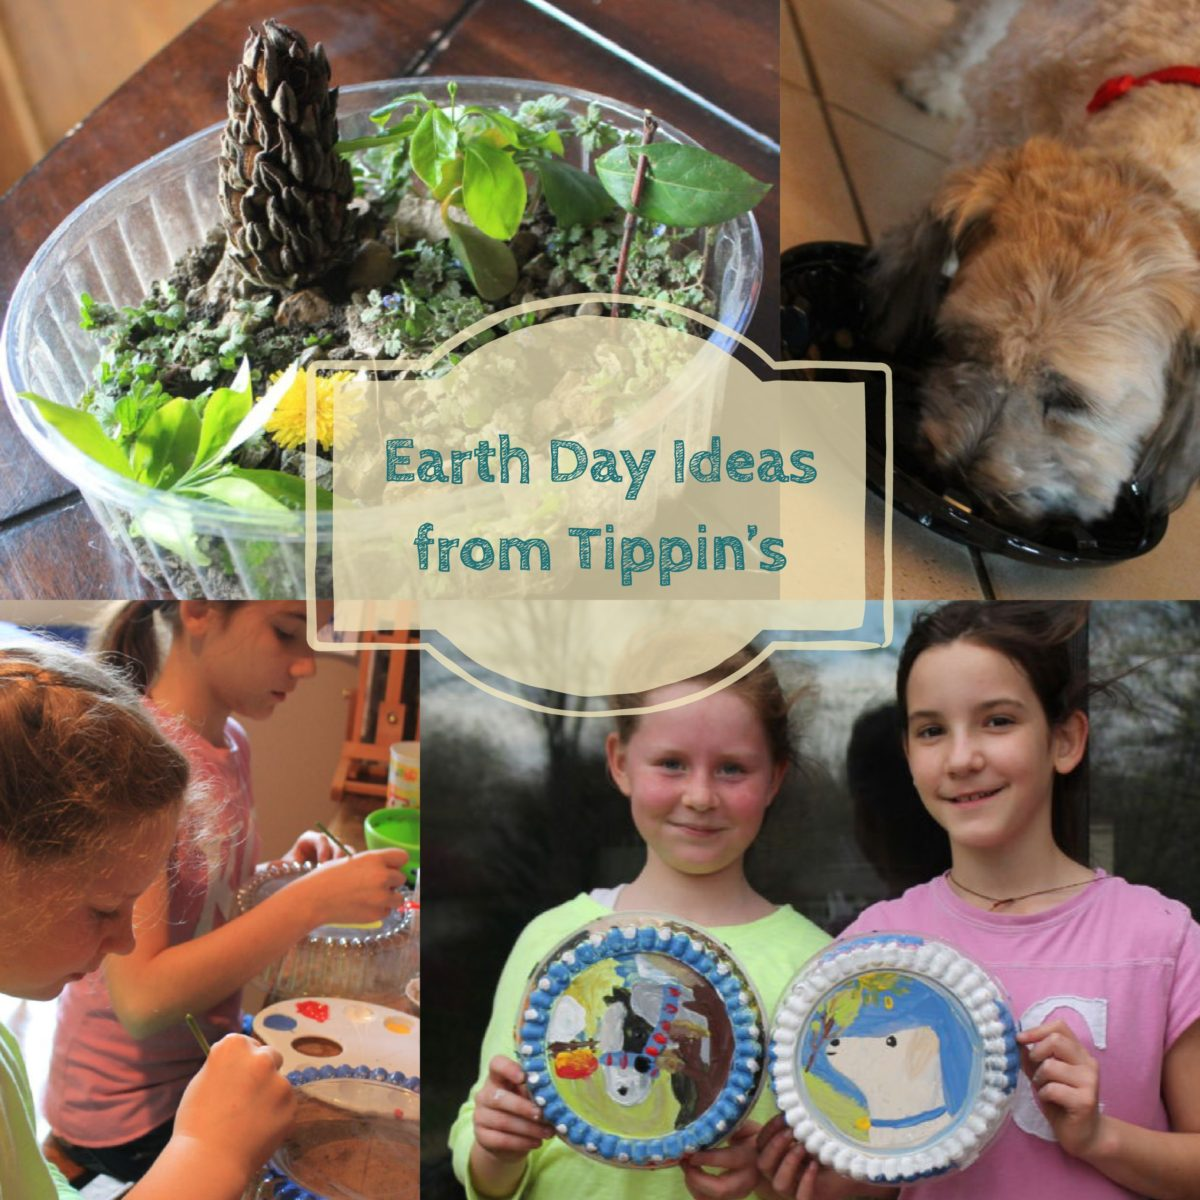 Earth Day Ideas from Tippin's